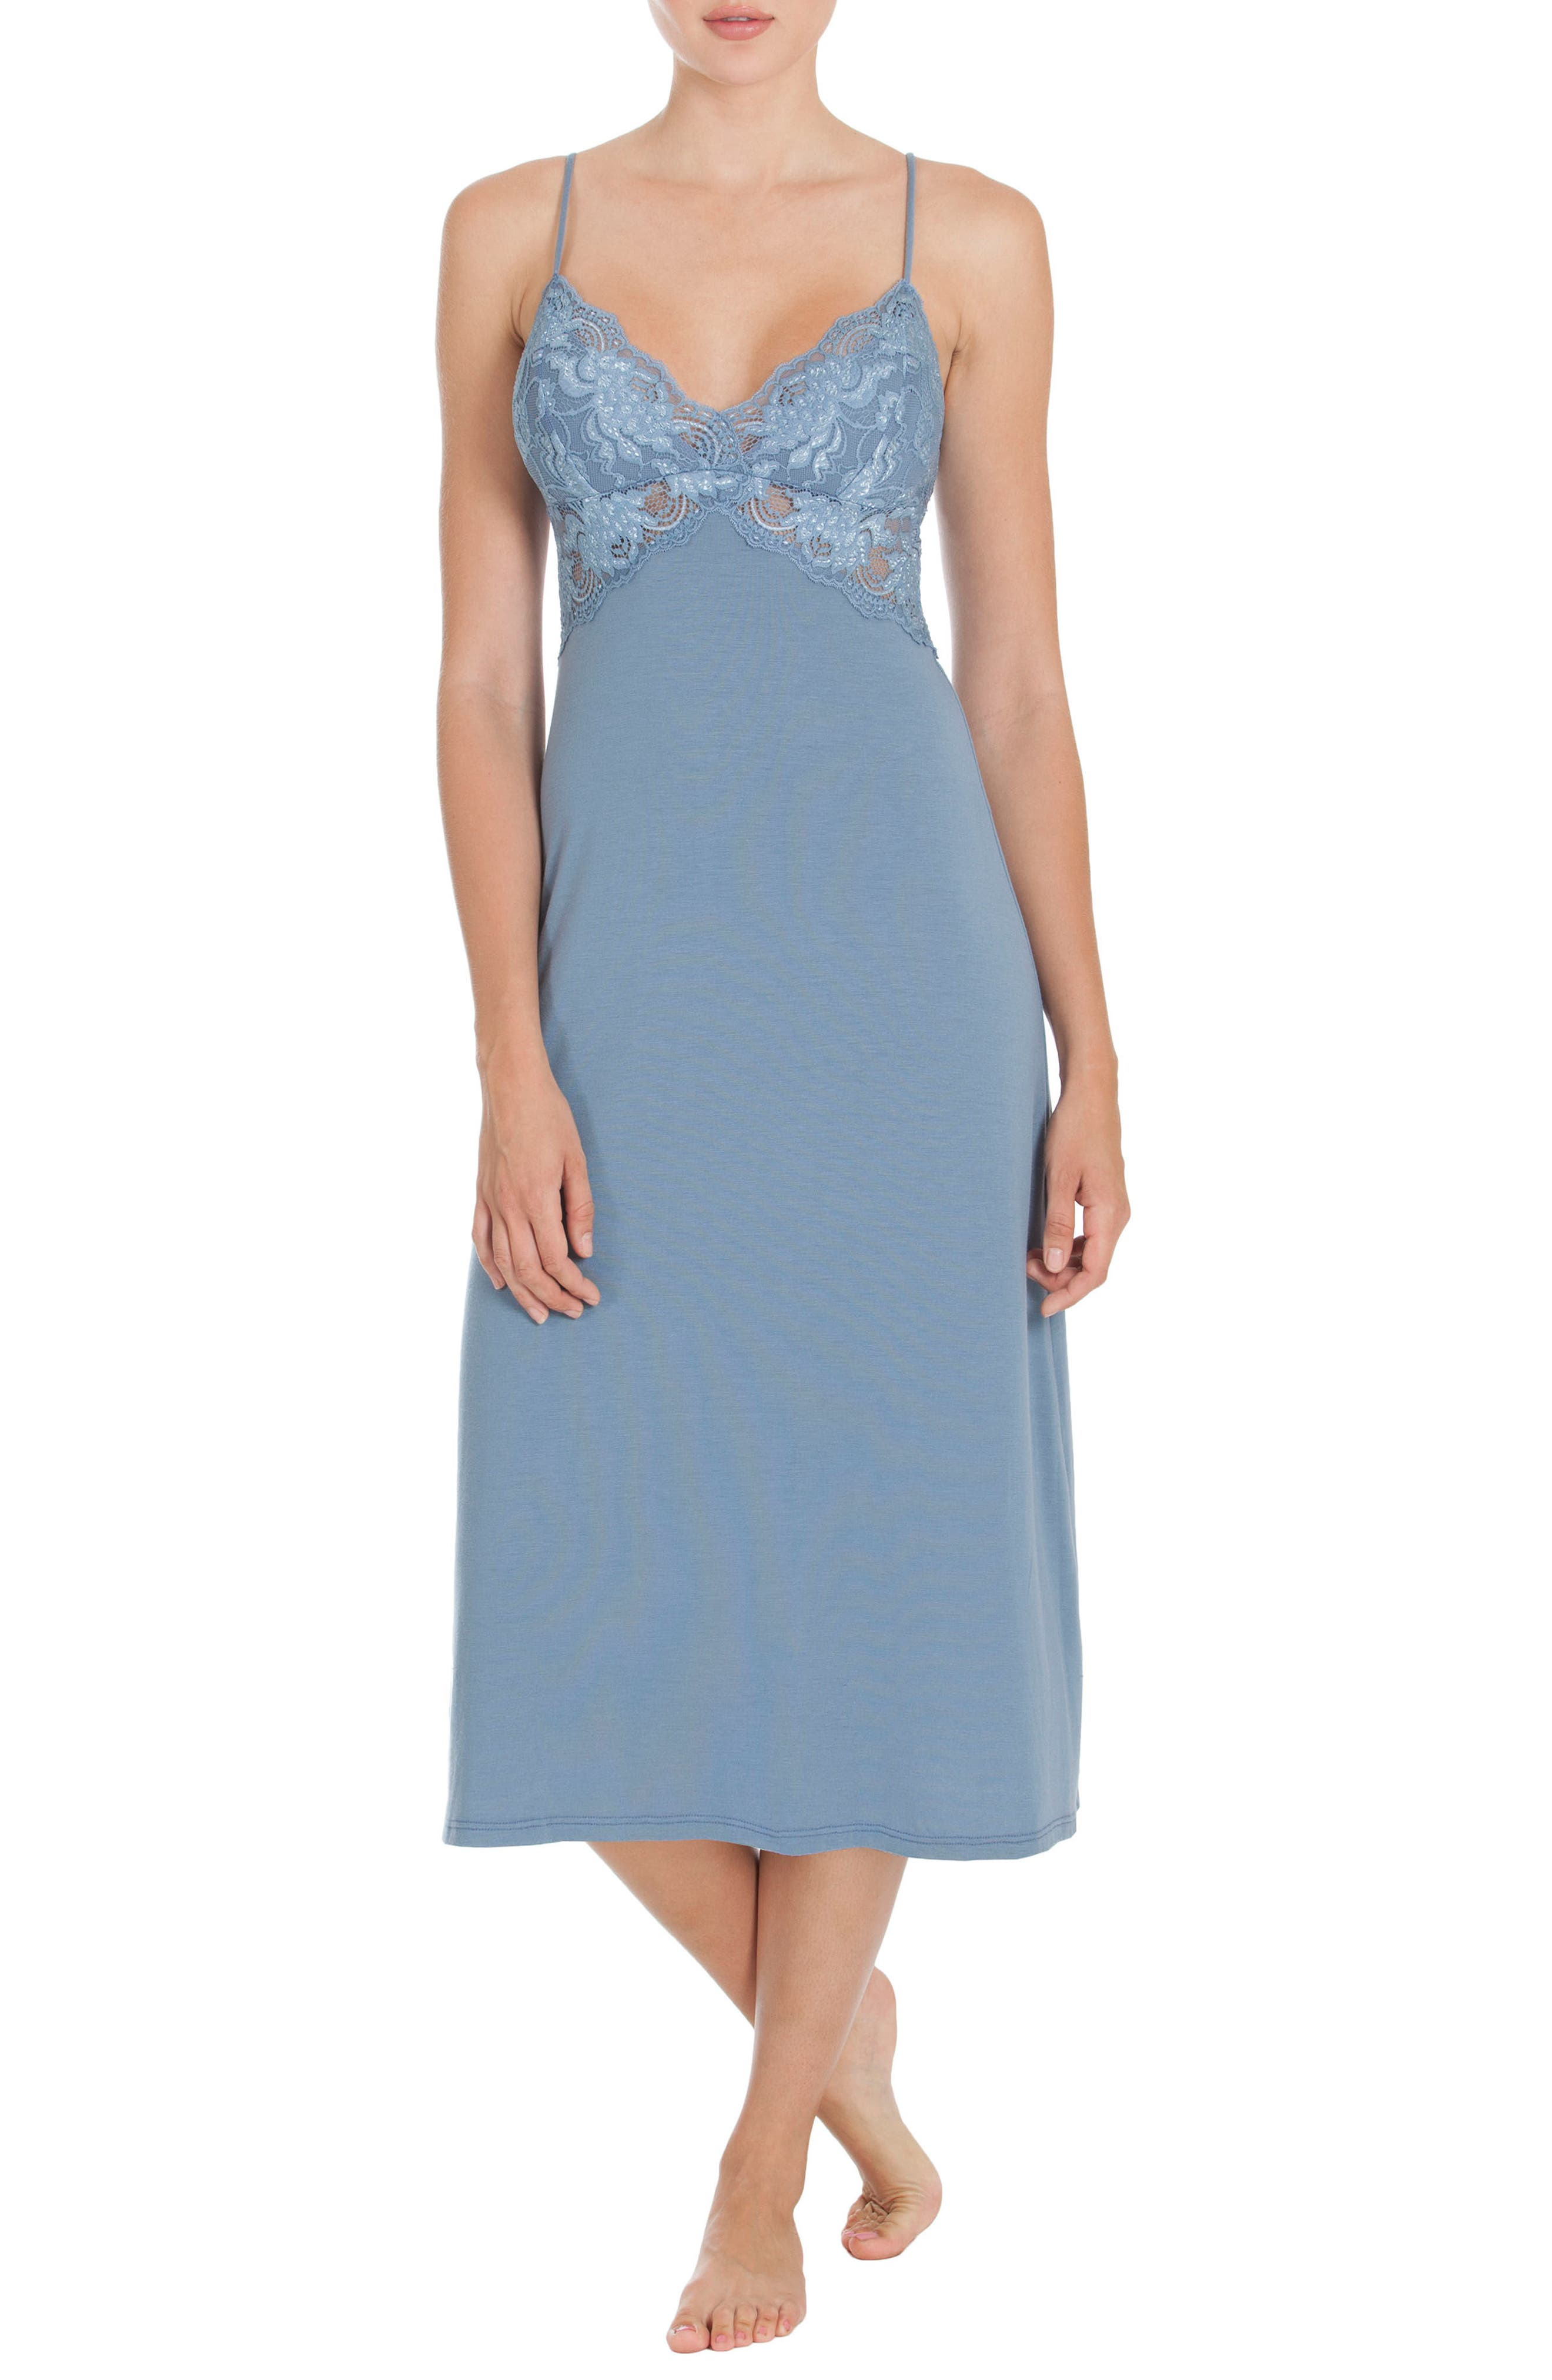 In Bloom by Jonquil Nightgown,                         Main,                         color, Steel Blue